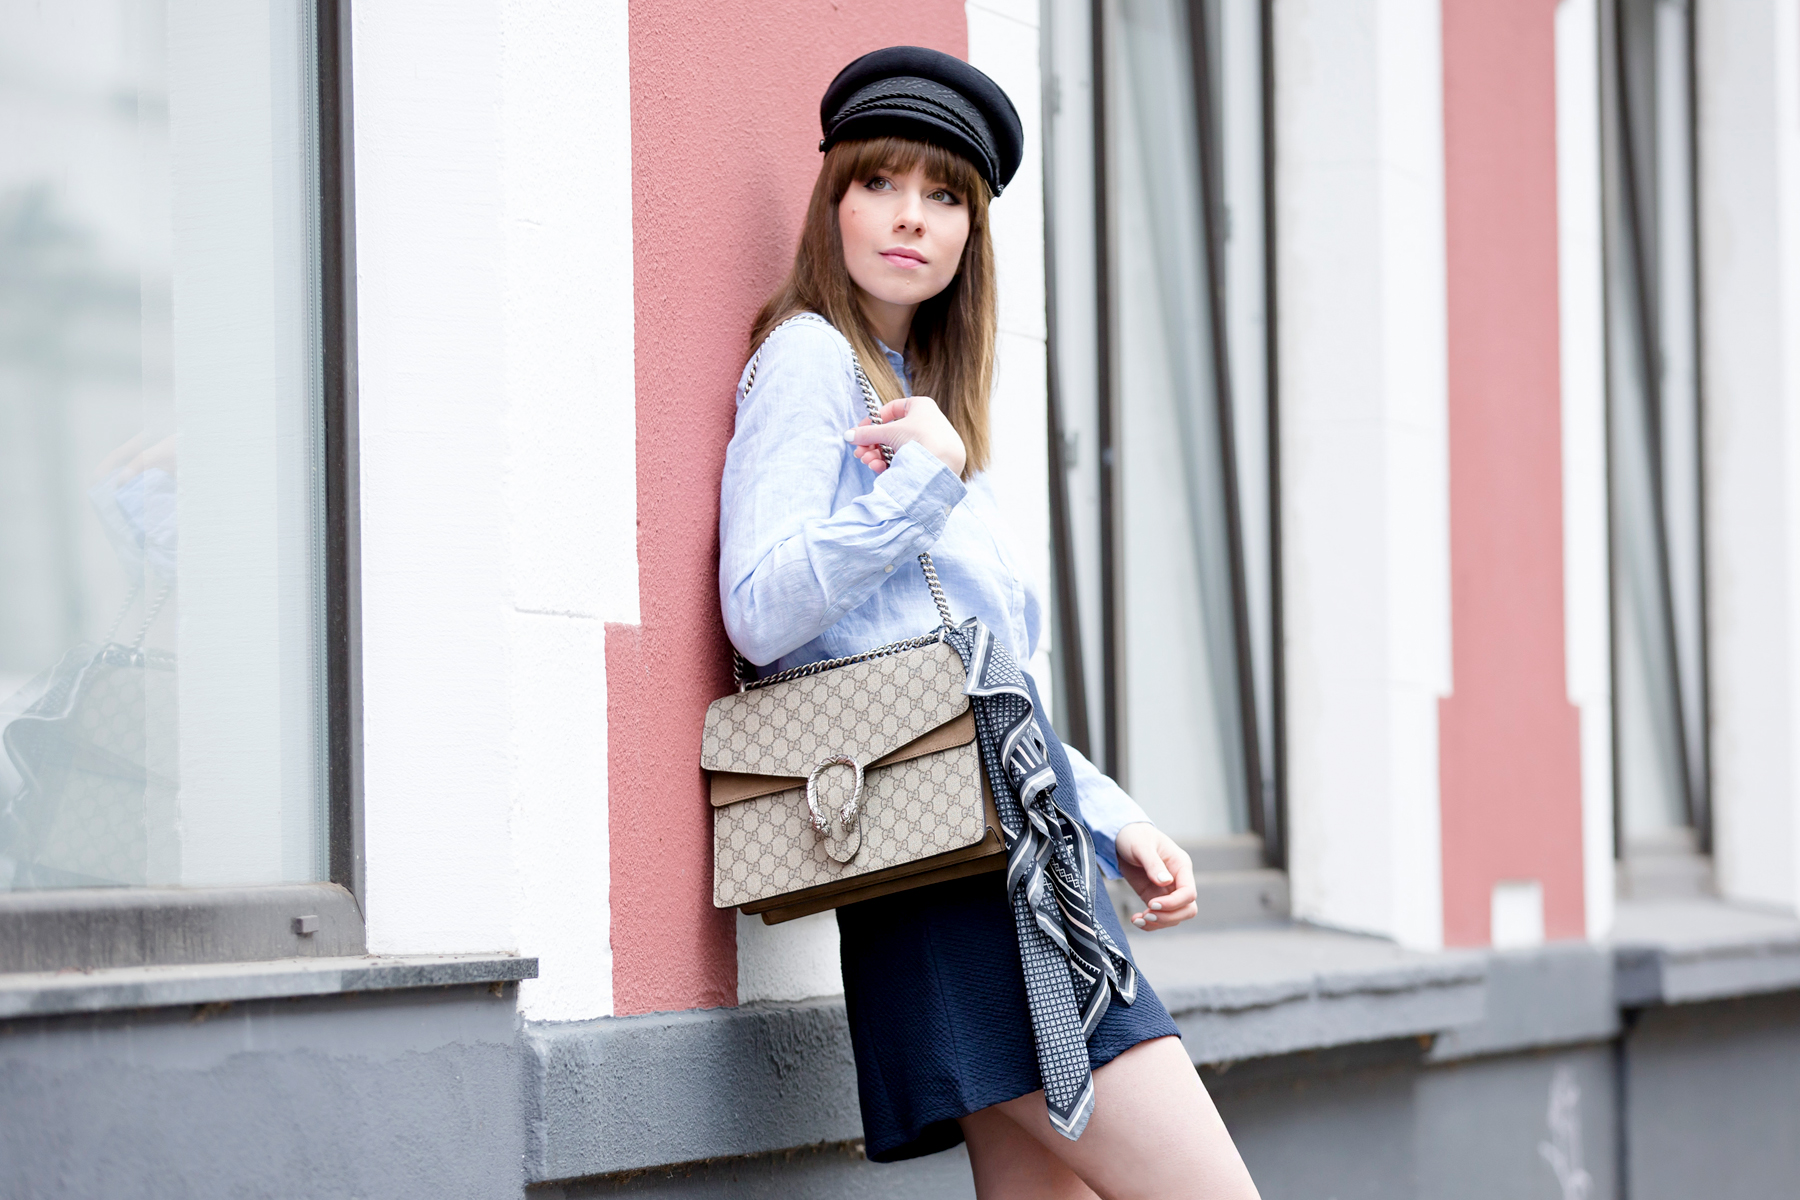 sailor blue french parisienne outfit gucci dionysus chanel luxury fashion blogger modeblogger deutschland hat cute bangs brunette ootd outfit look lookbook cats & dogs ricarda schernus blog 3